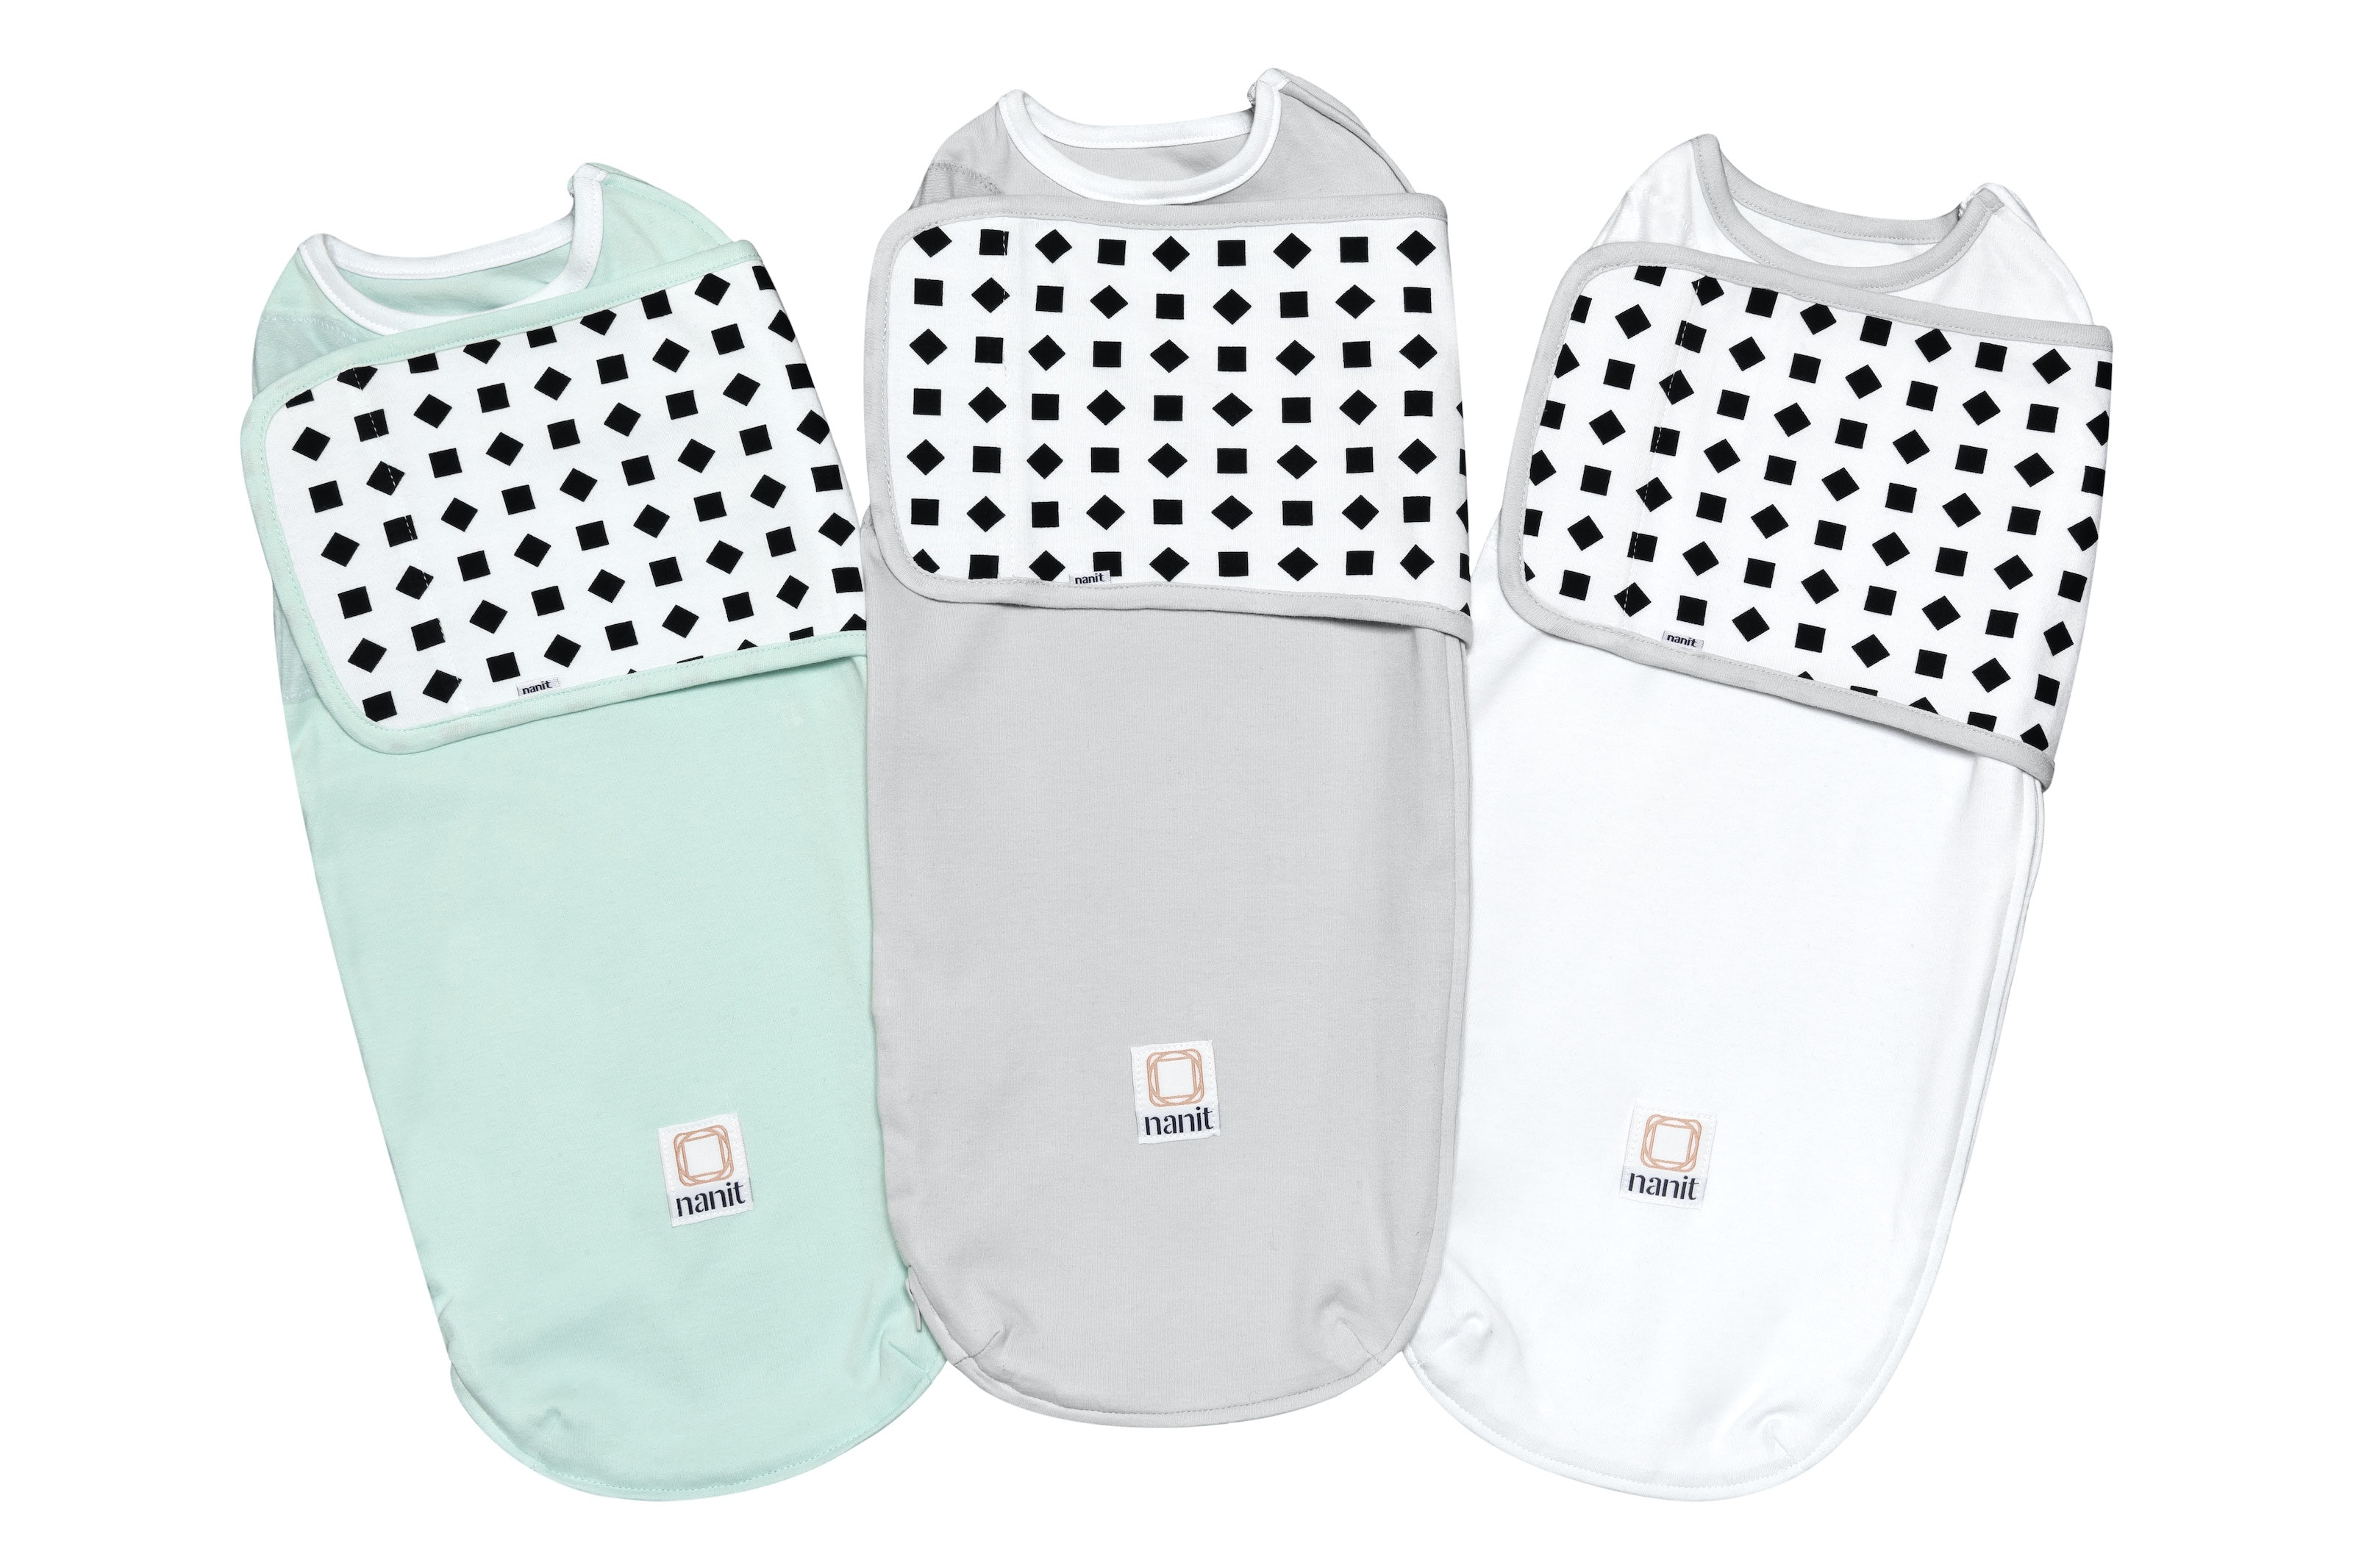 Nanit swaddle 08 3pack